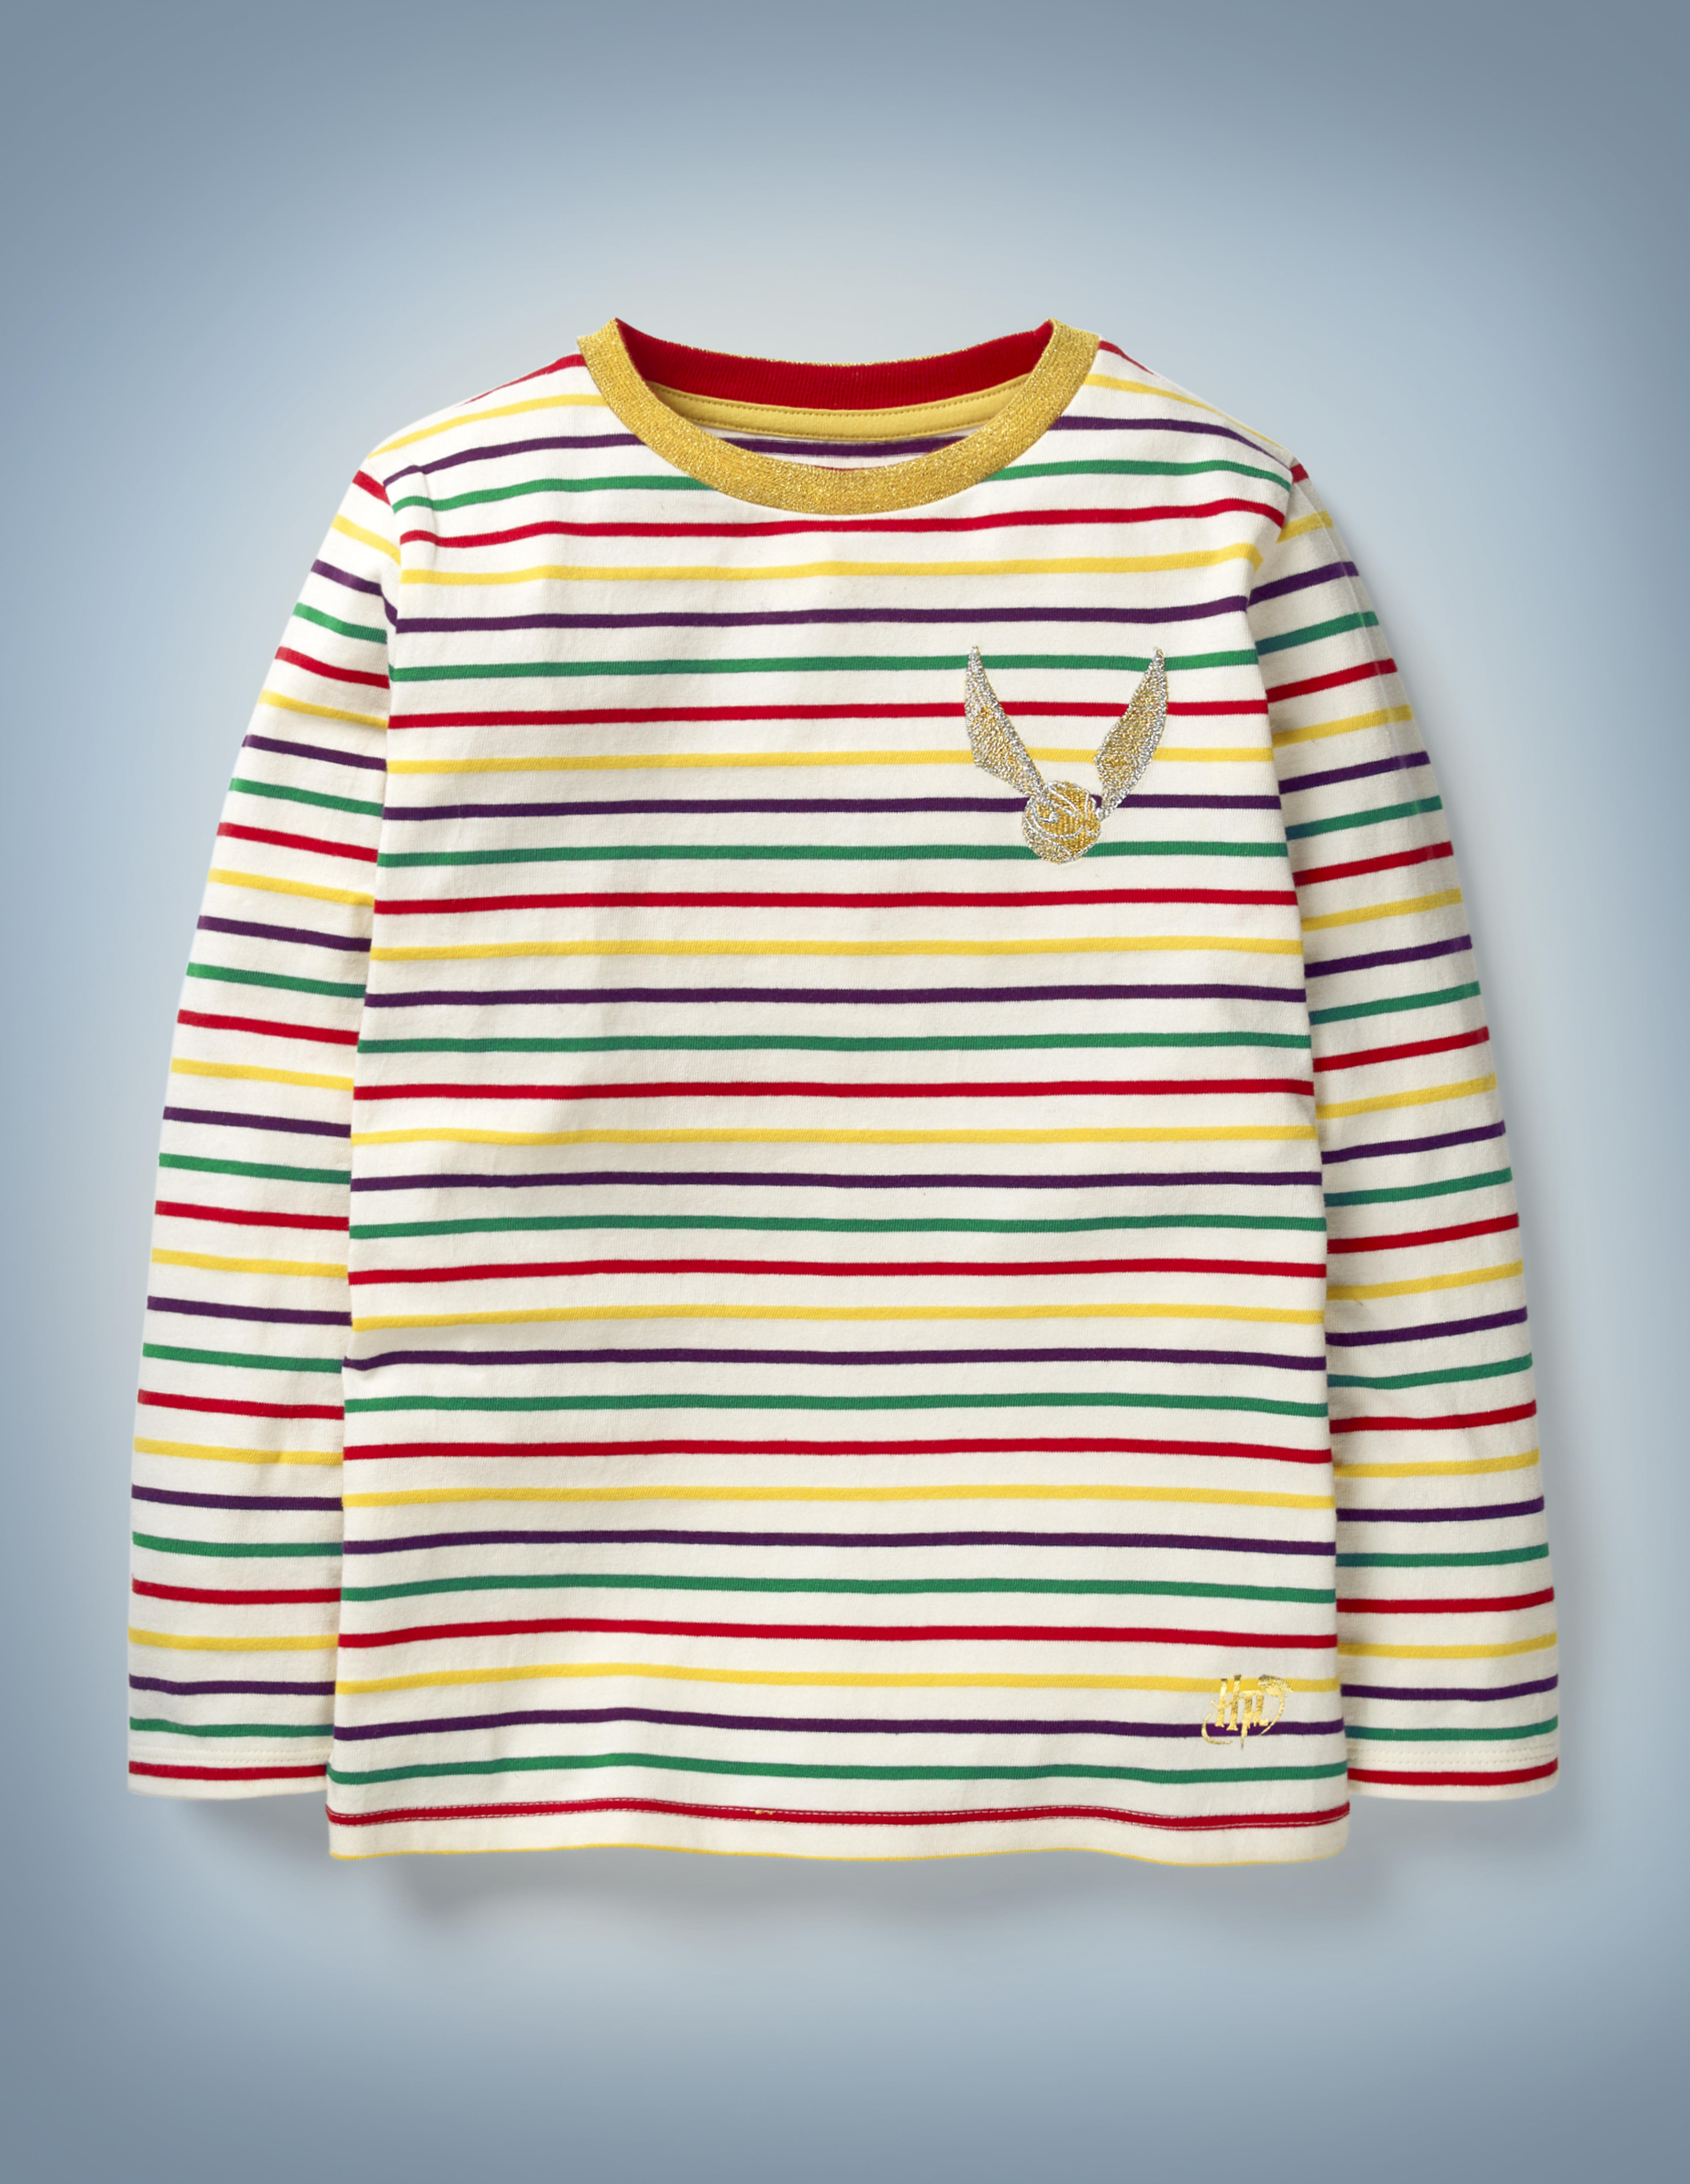 The Mini Boden Golden Snitch Breton, multi-color, features all-over stripes in Hogwarts House colors between white and an image of a Golden Snitch in the front pocket area. It retails at £20.